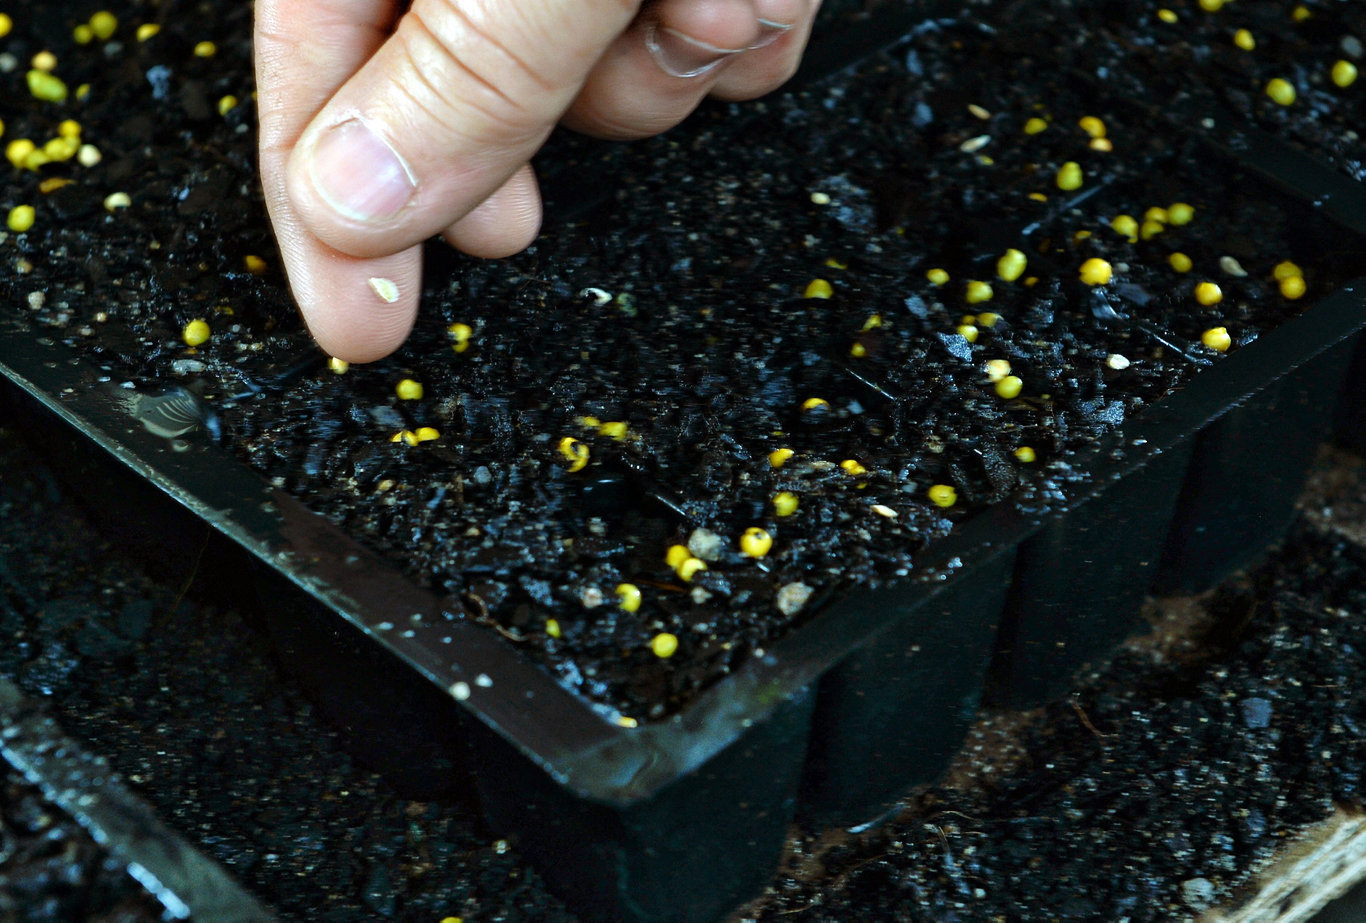 How to plant your seeds. Step 4: Place one seed in each pot, being careful not to put it directly on a thing of fertiliser. Cover with a small amount of soil, and move to a well-lit area.